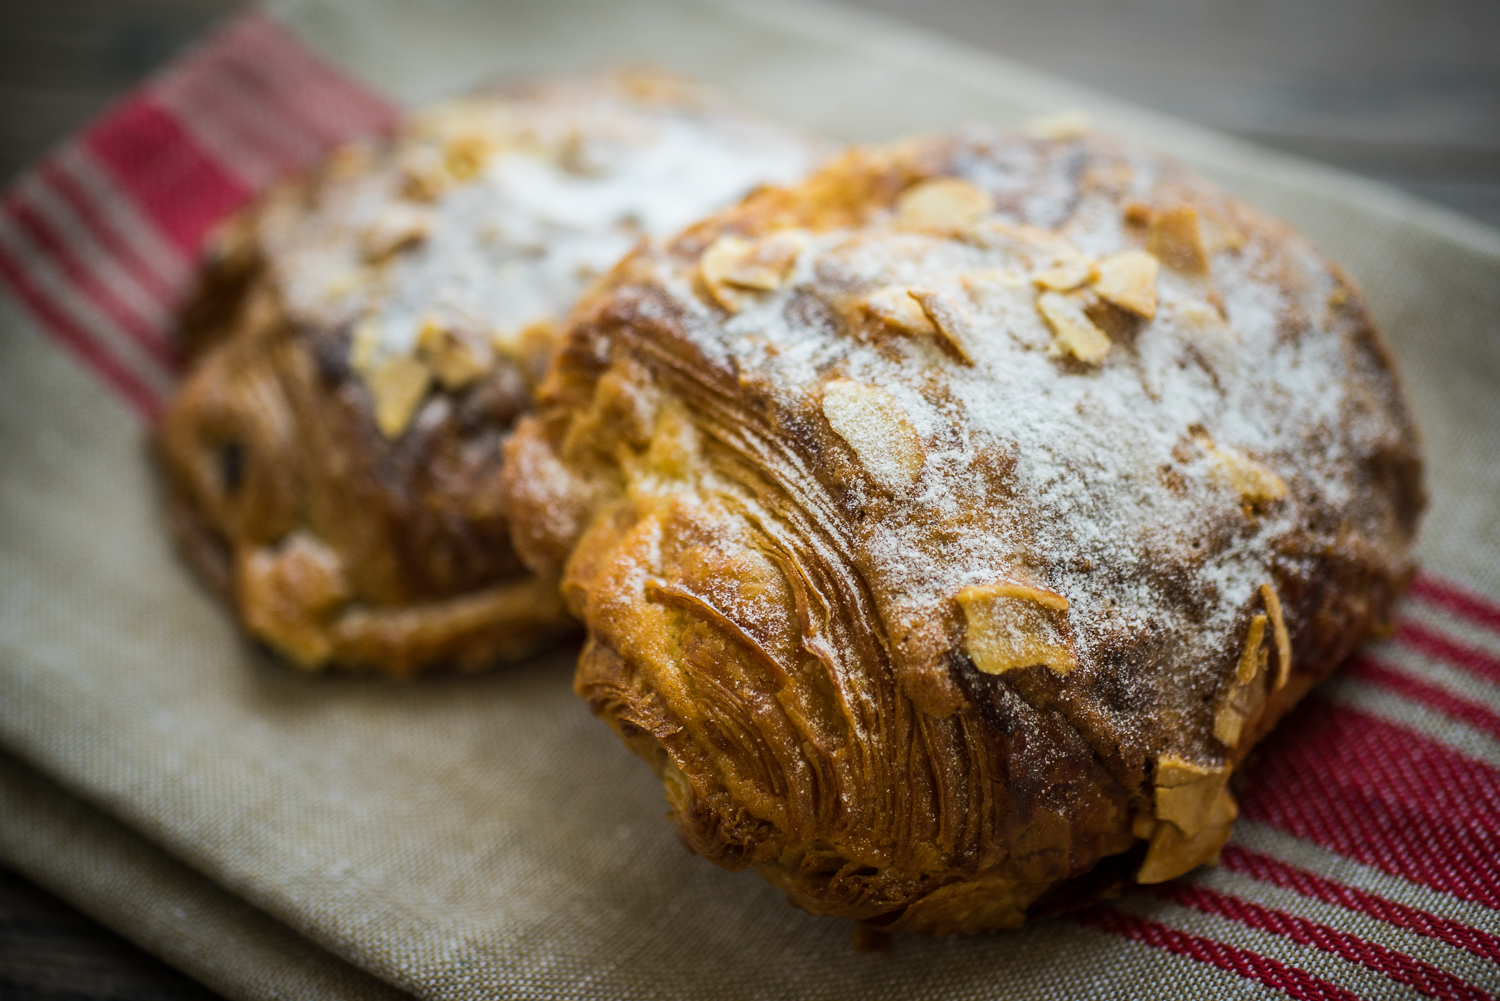 Our amazingly flaky chocolate croissant requires 3 days of preparation until it's ready to be enjoyed - it's loaded with buttery texture and wonderful french chocolate!